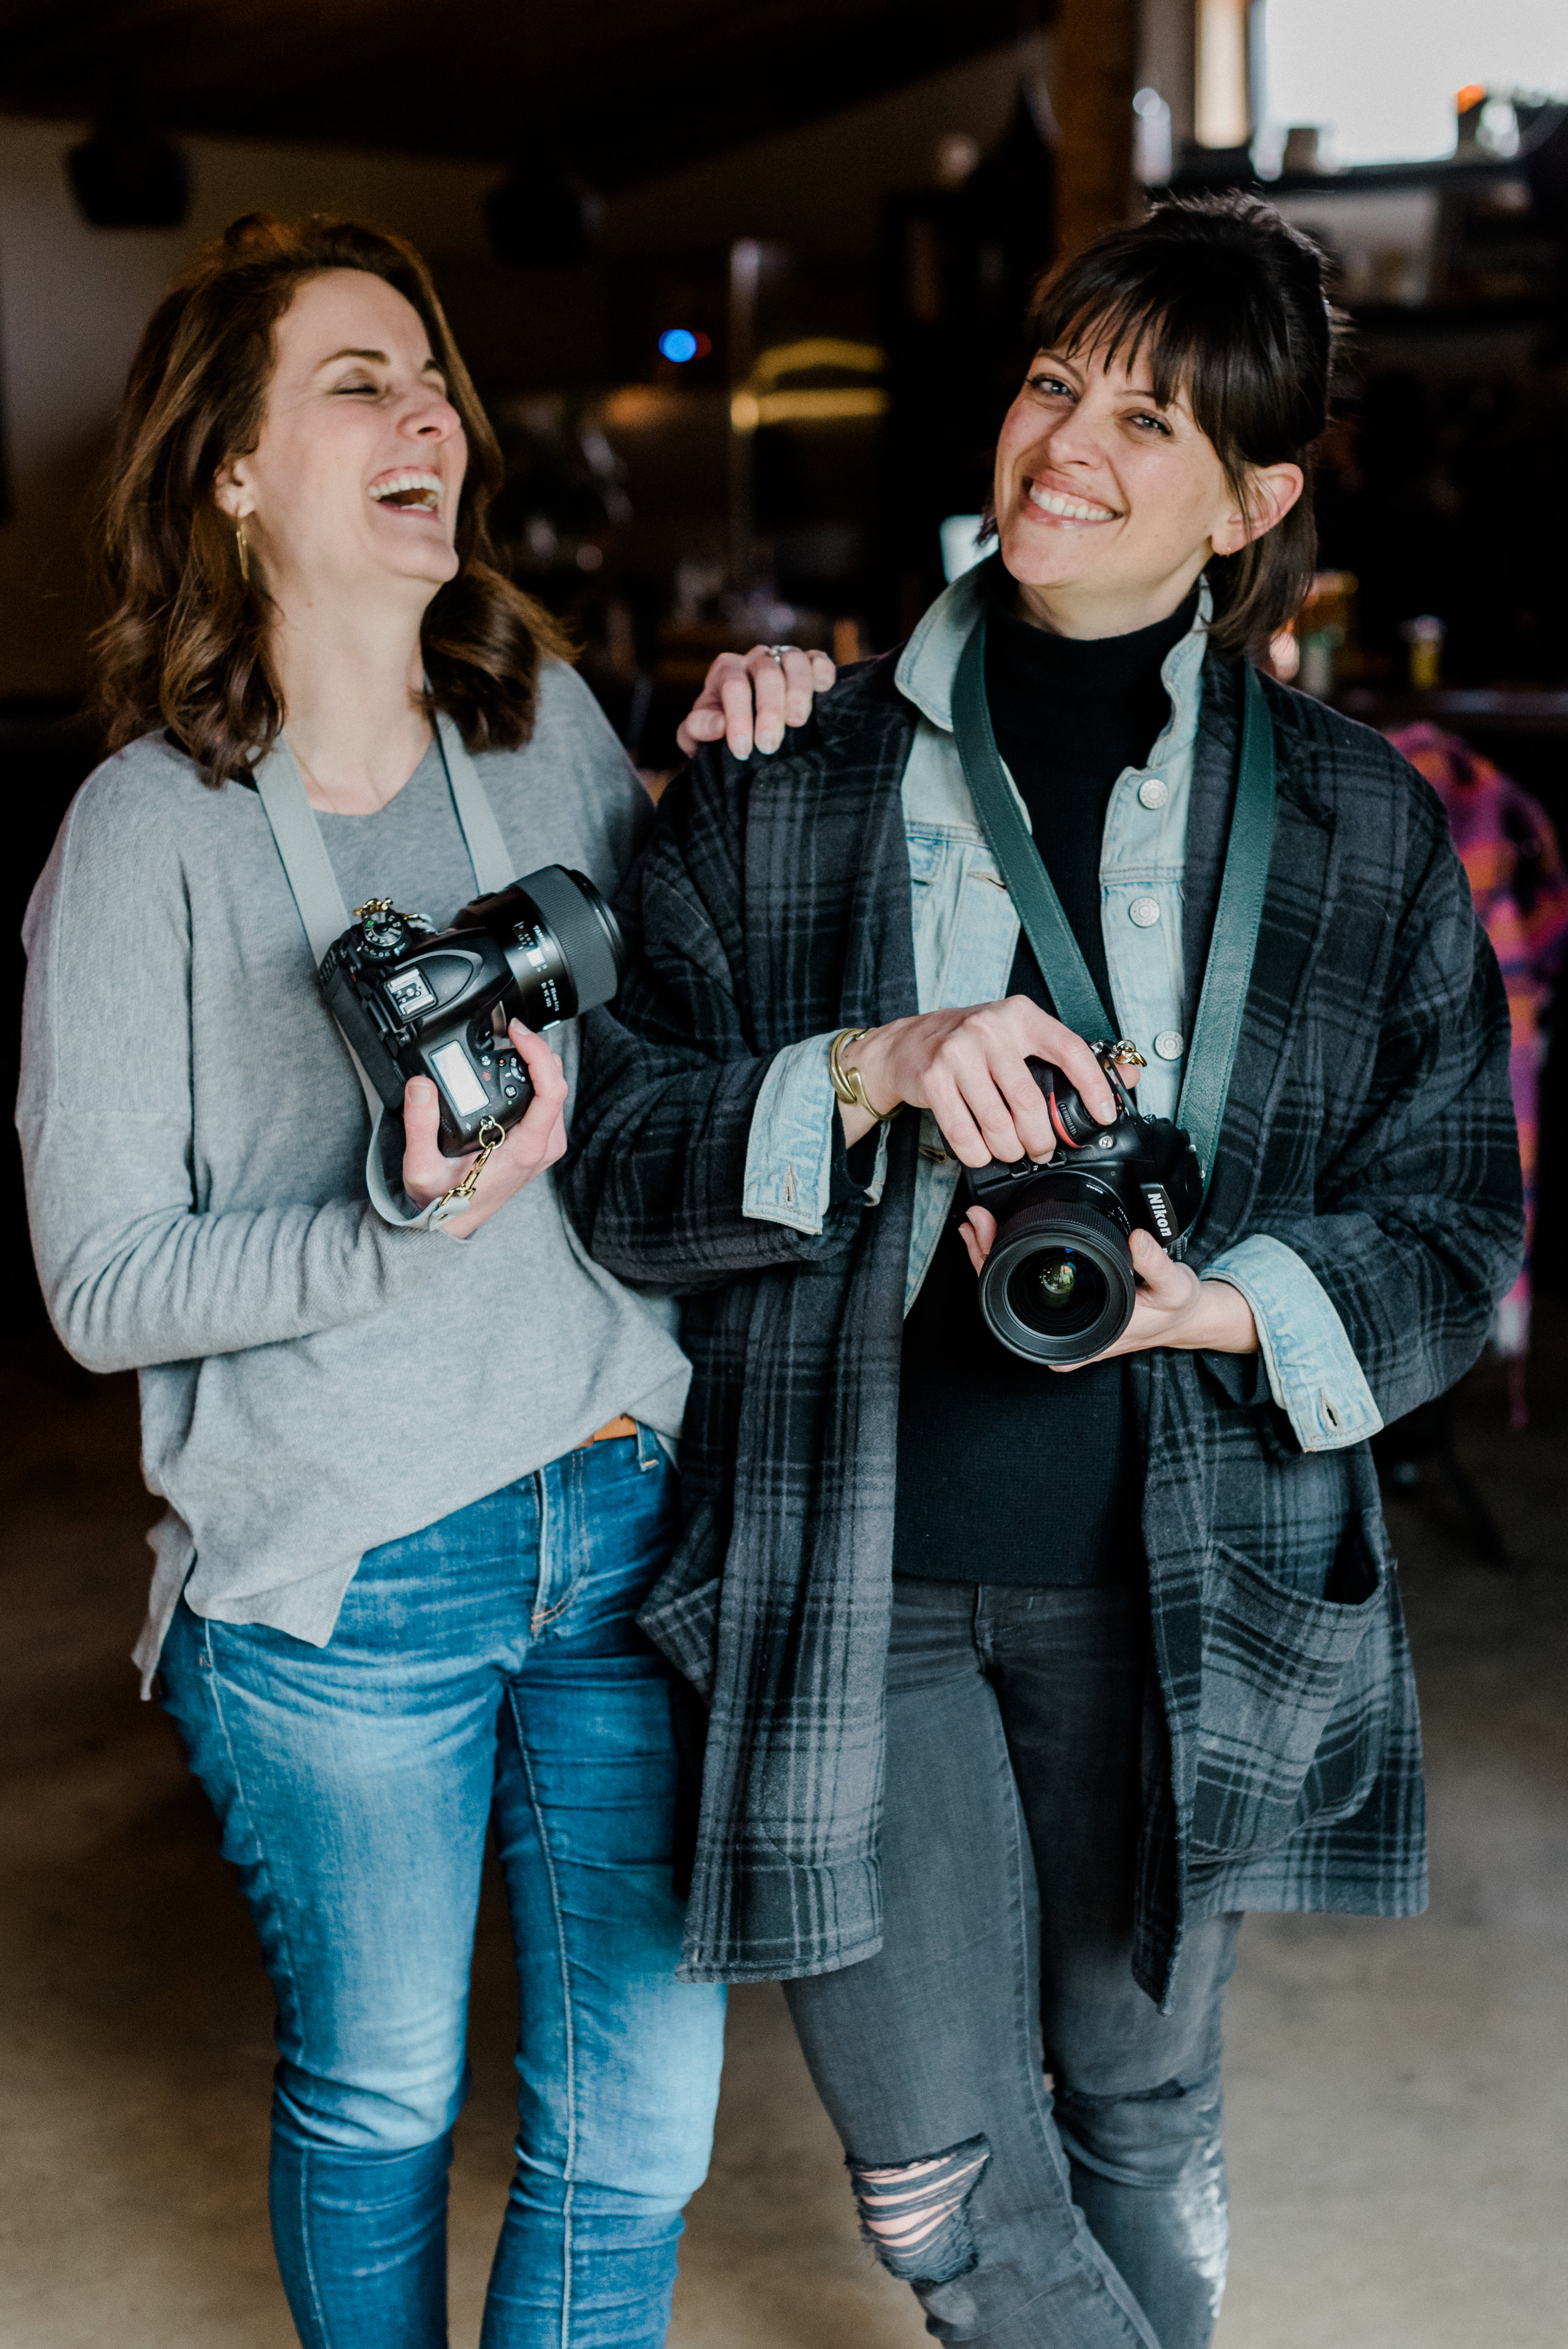 """""""I would travel with you again in a heartbeat"""". - """"There was a tremendous amount of valuable information and I am trying to work on finding the light now. I would travel with Courtney and Trisha again in a heartbeat.""""-- Sarah Hunter"""